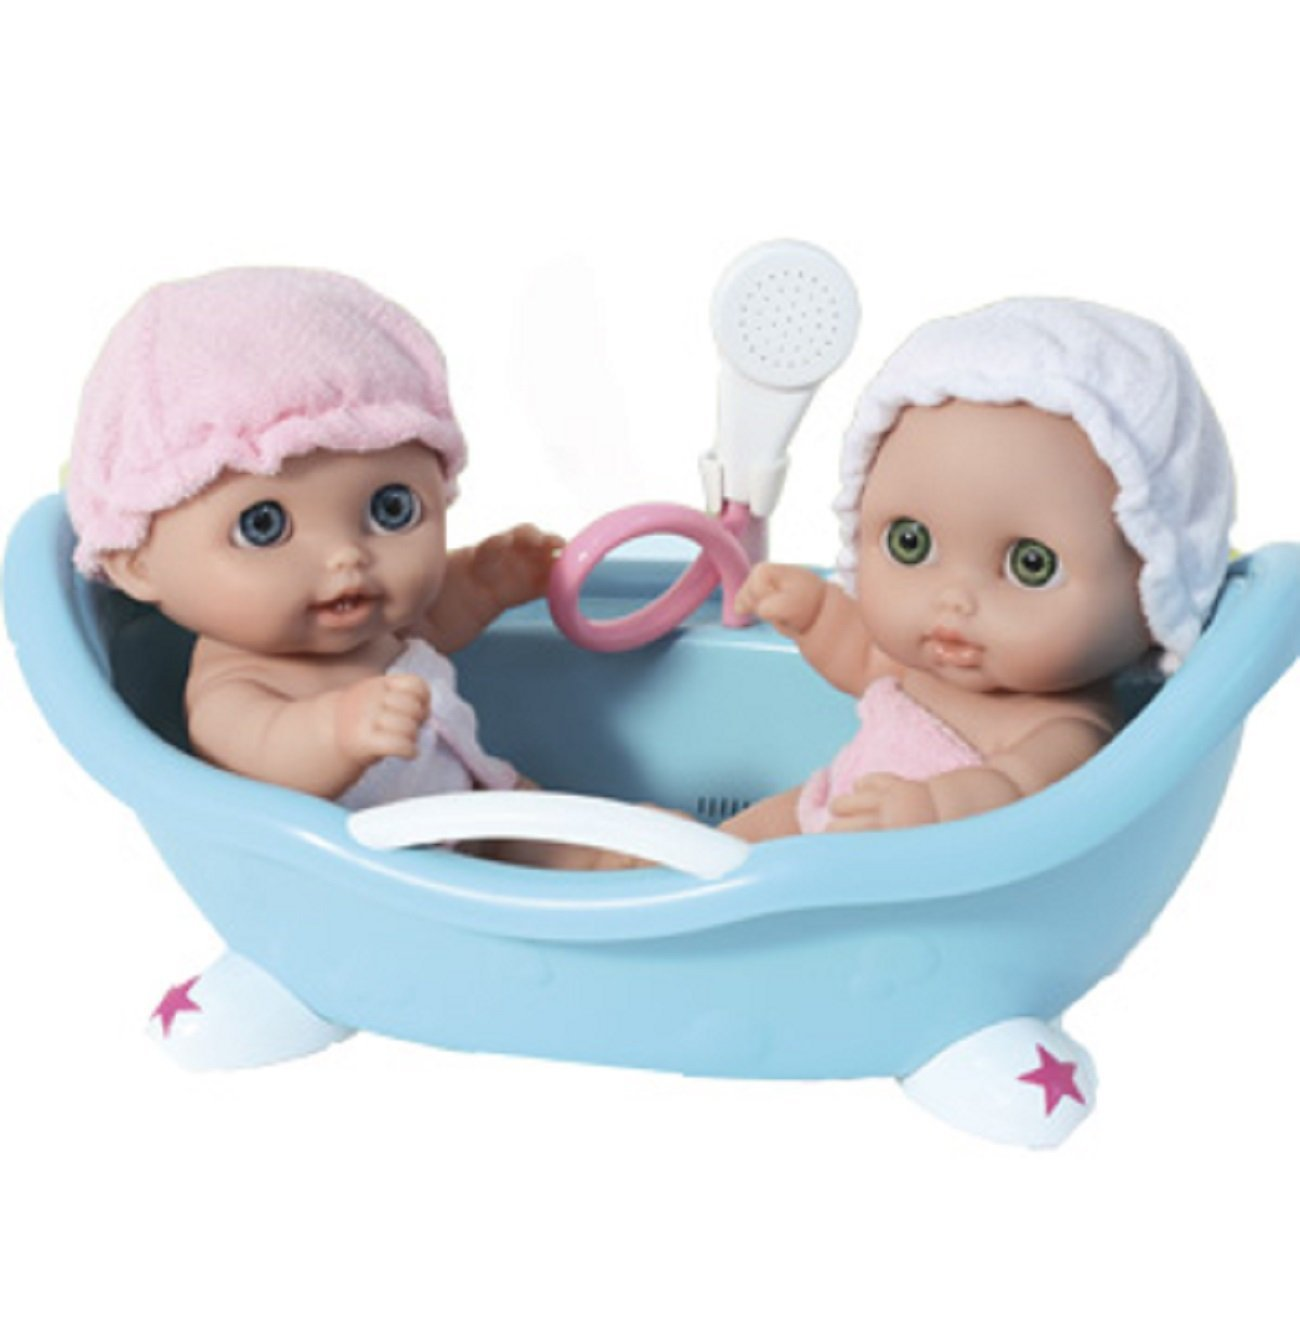 "Lil/' Cutsies Twin Dolls in Bath 8.5"" all vinyl water friendly dolls,"